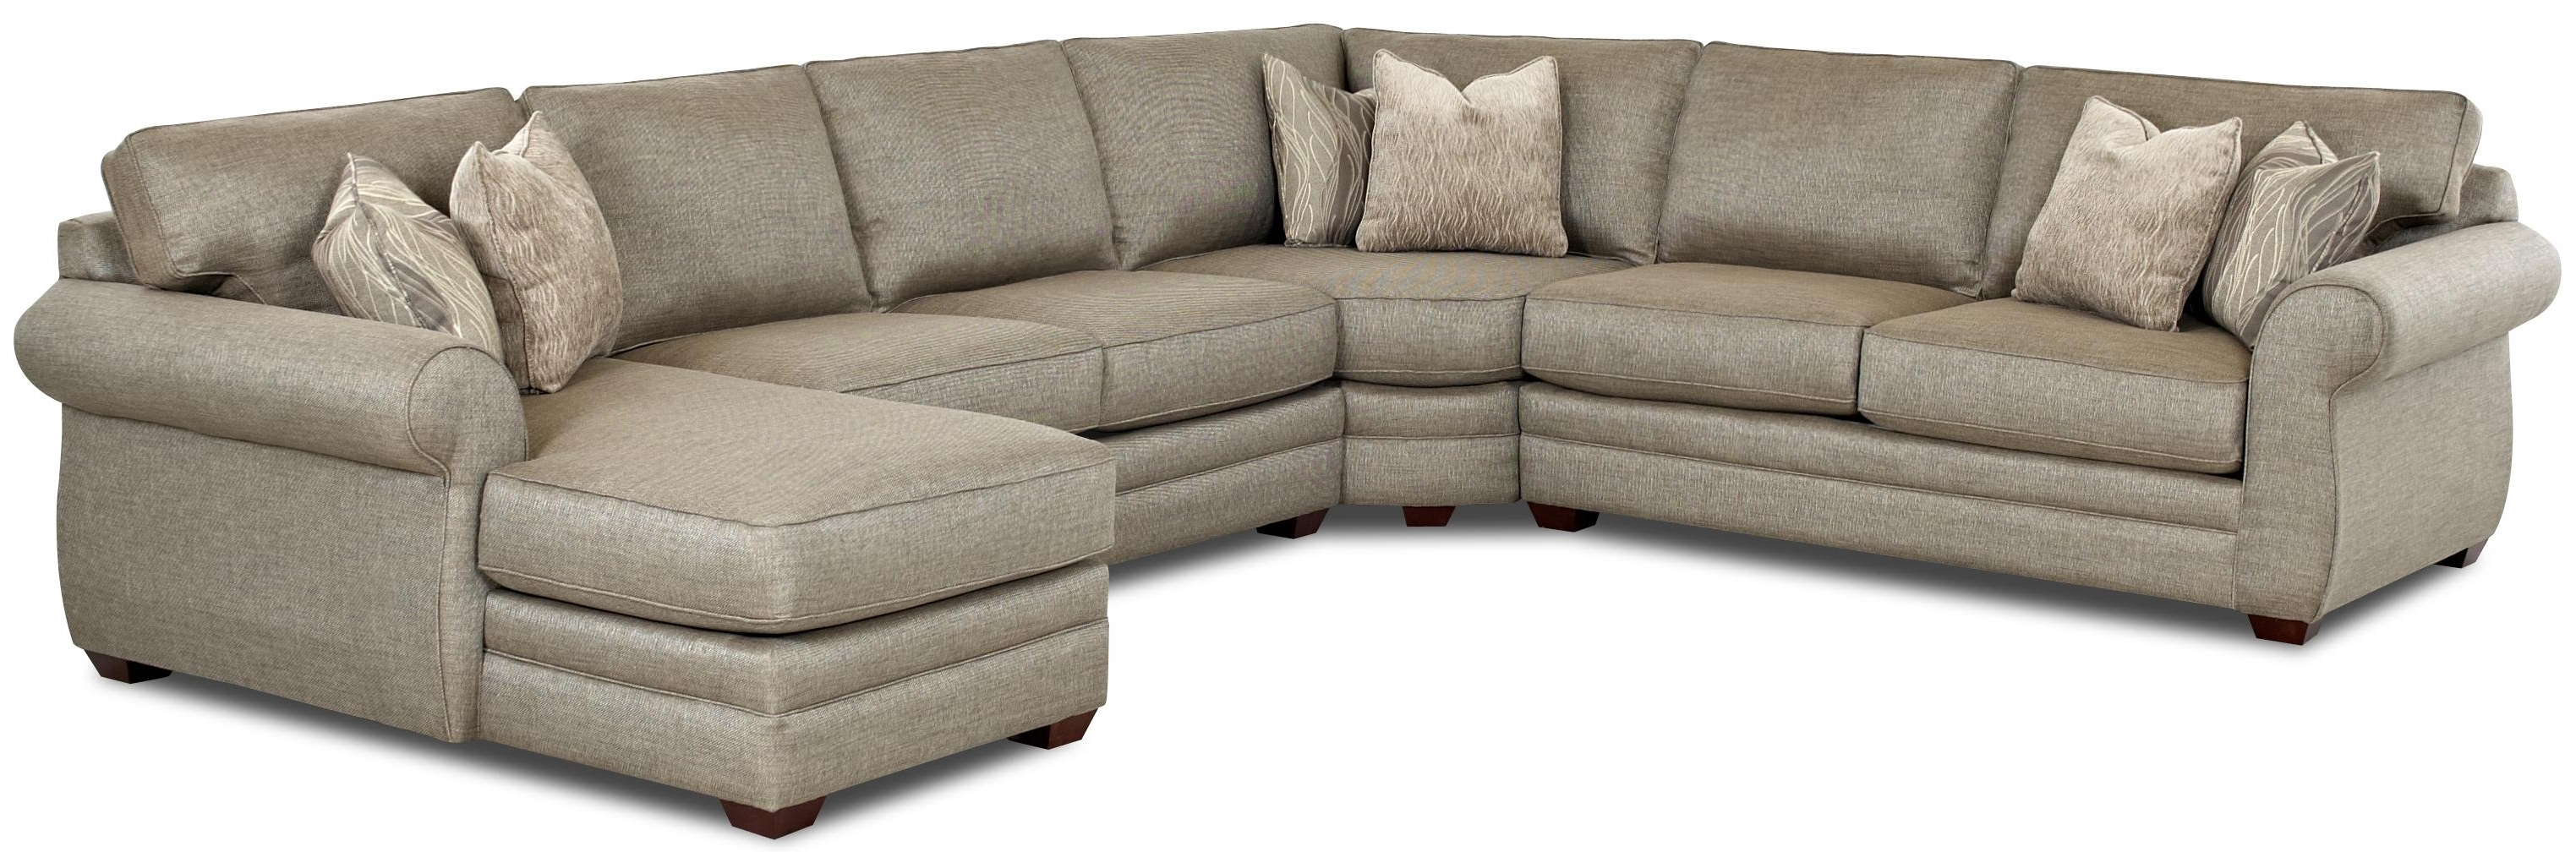 Most Recently Released Klaussner Clanton Transitional Sectional Sofa With Right Chaise Inside Pittsburgh Sectional Sofas (View 7 of 15)